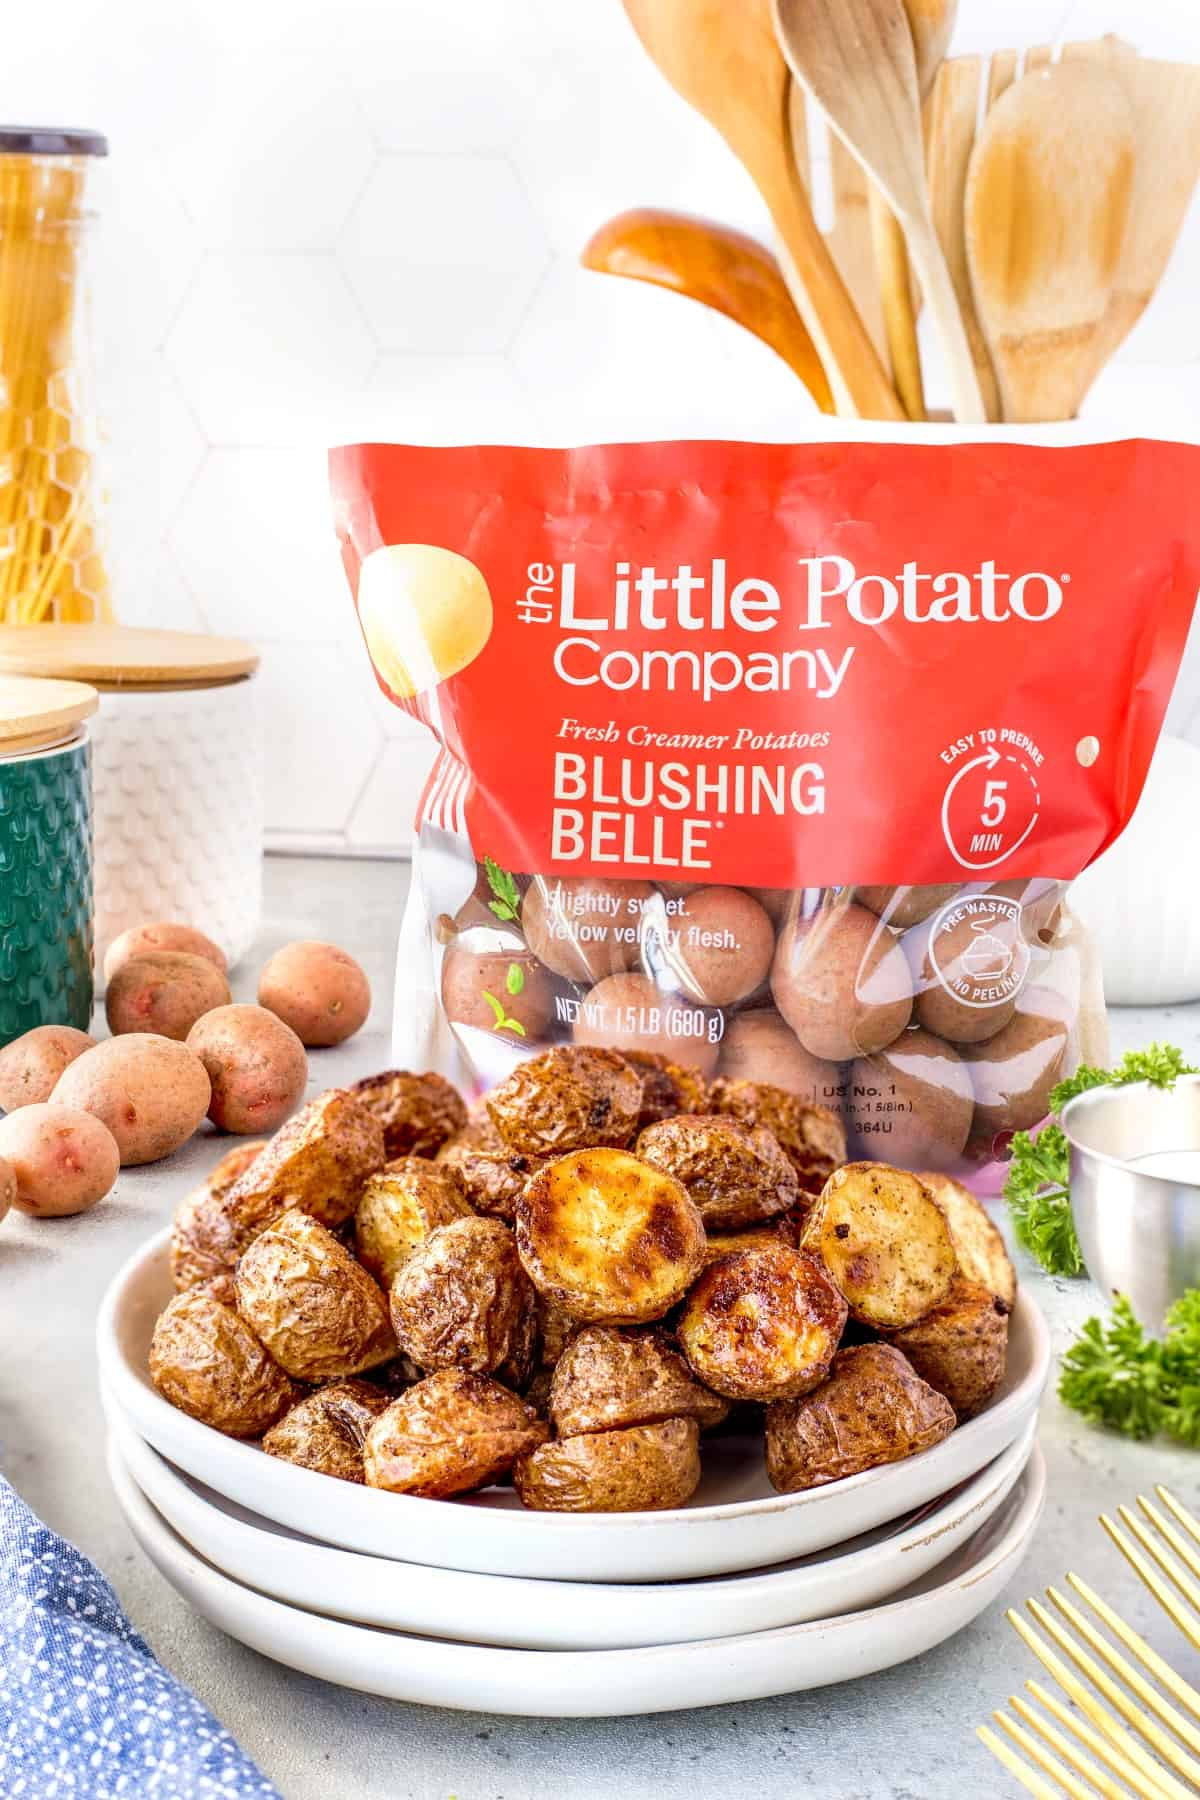 Plate of Cajun Roasted Potatoes with a Little Potato Company bag of potatoes in the background